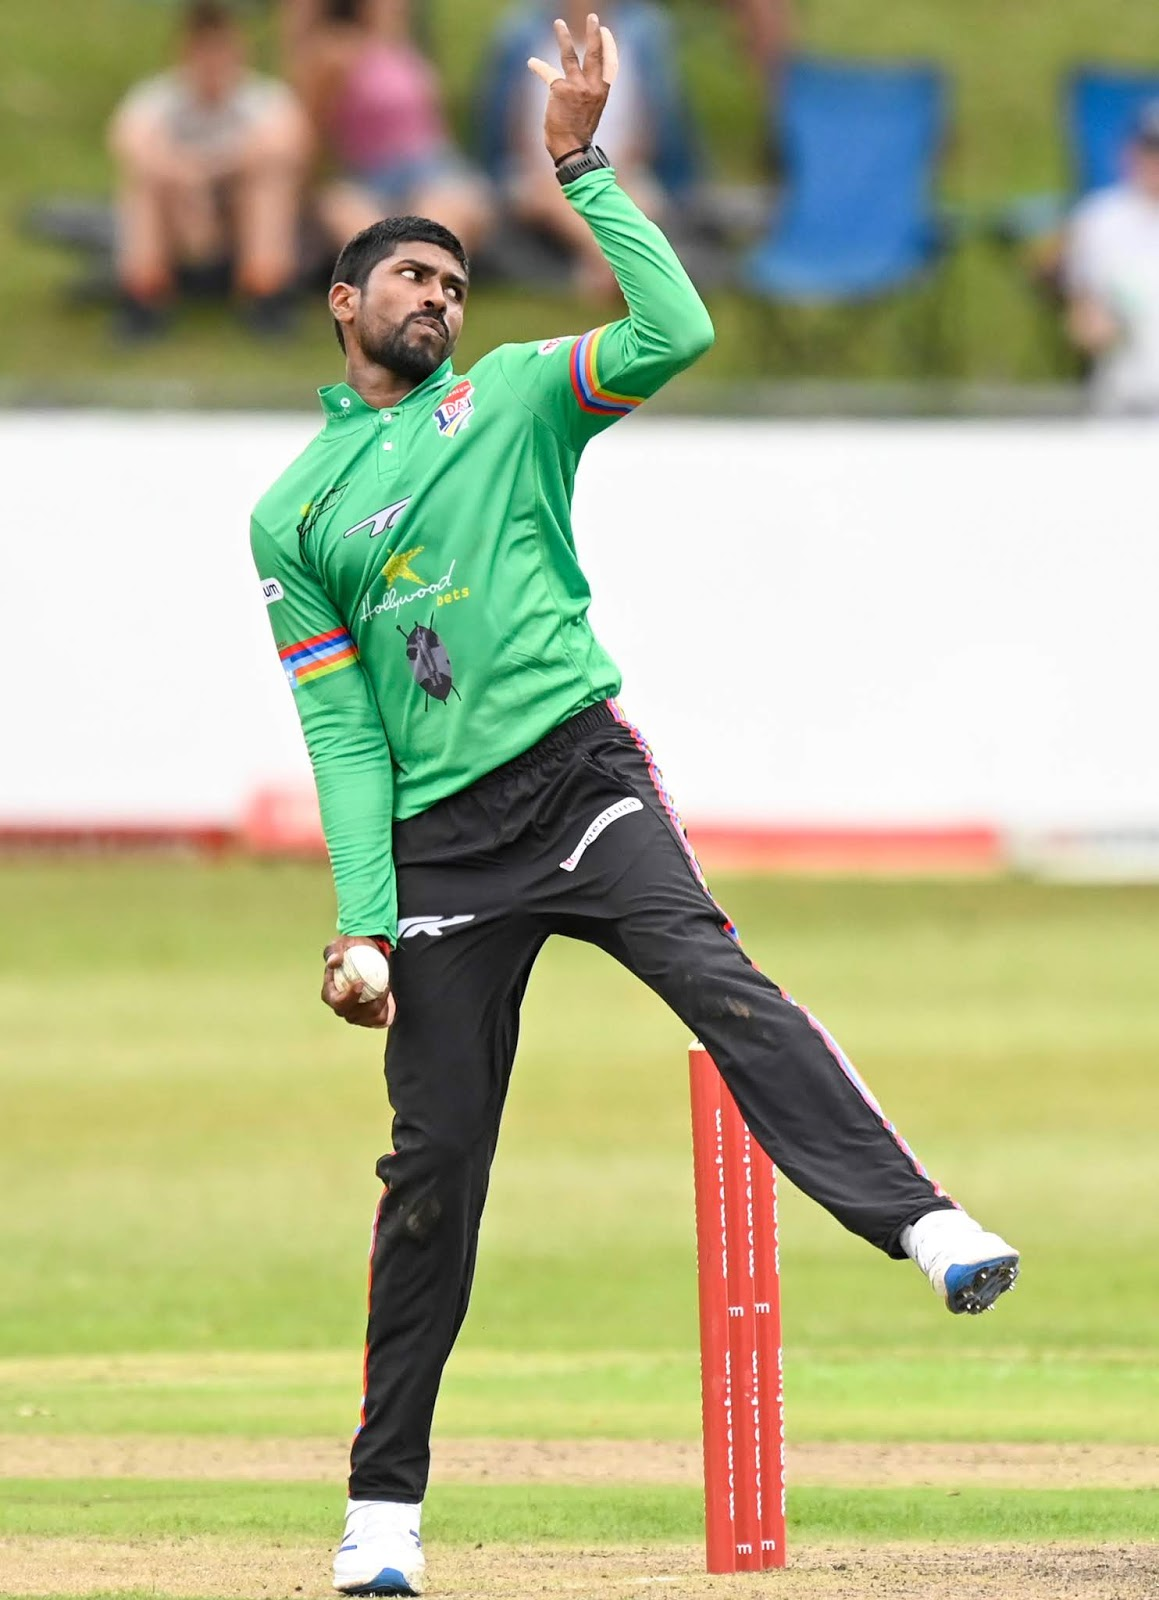 Subrayen takes over Dolphins MODC captaincy